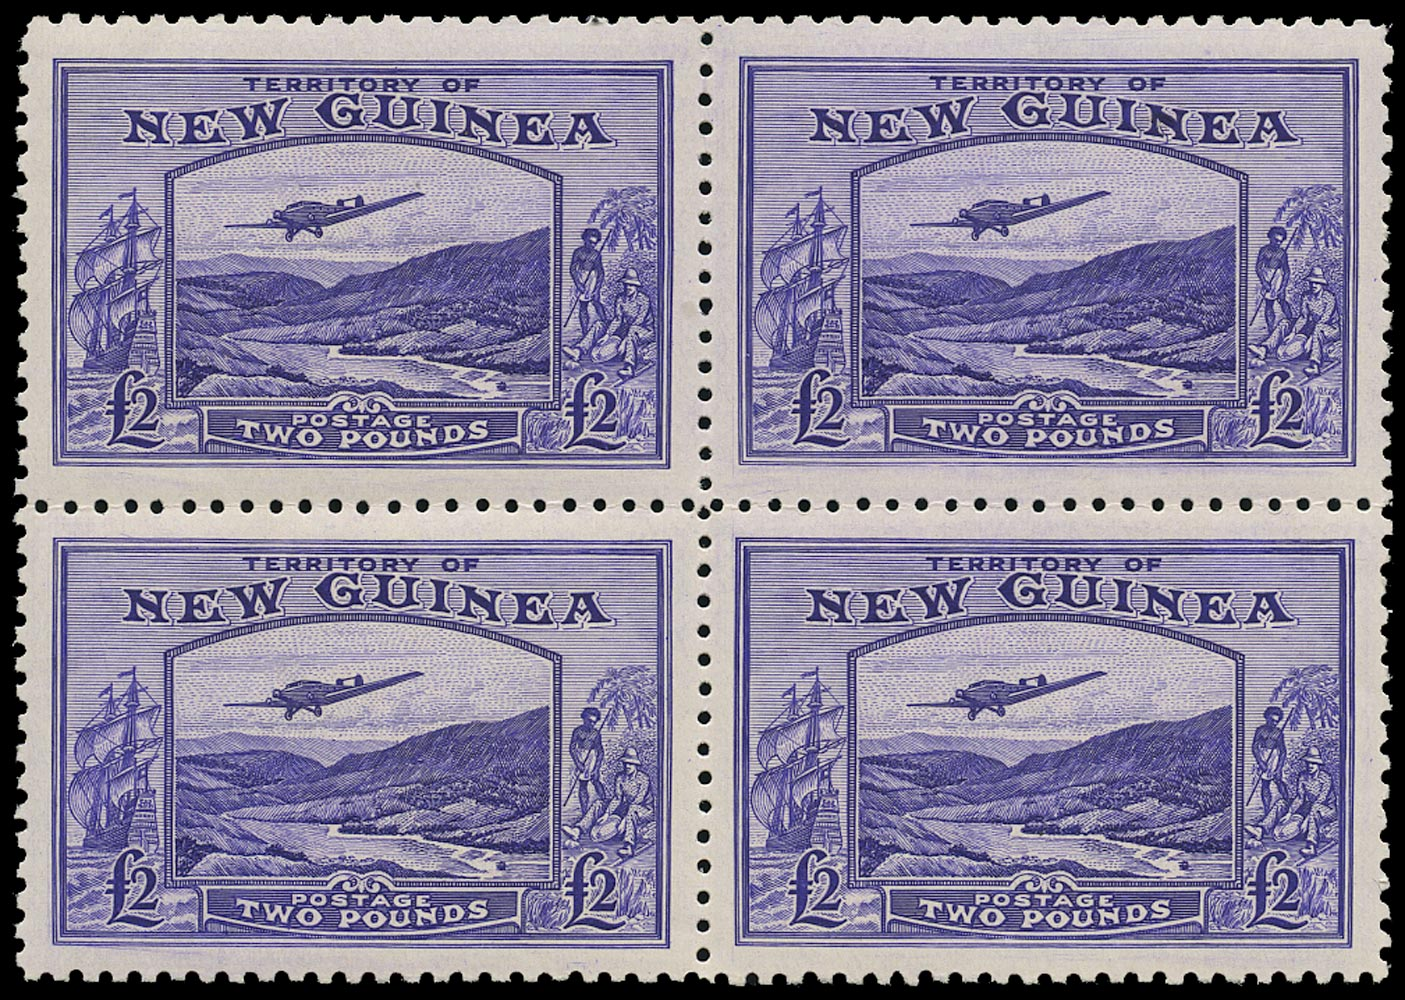 NEW GUINEA 1935  SG204 Mint Air £2 bright violet Bulolo Goldfields block of 4